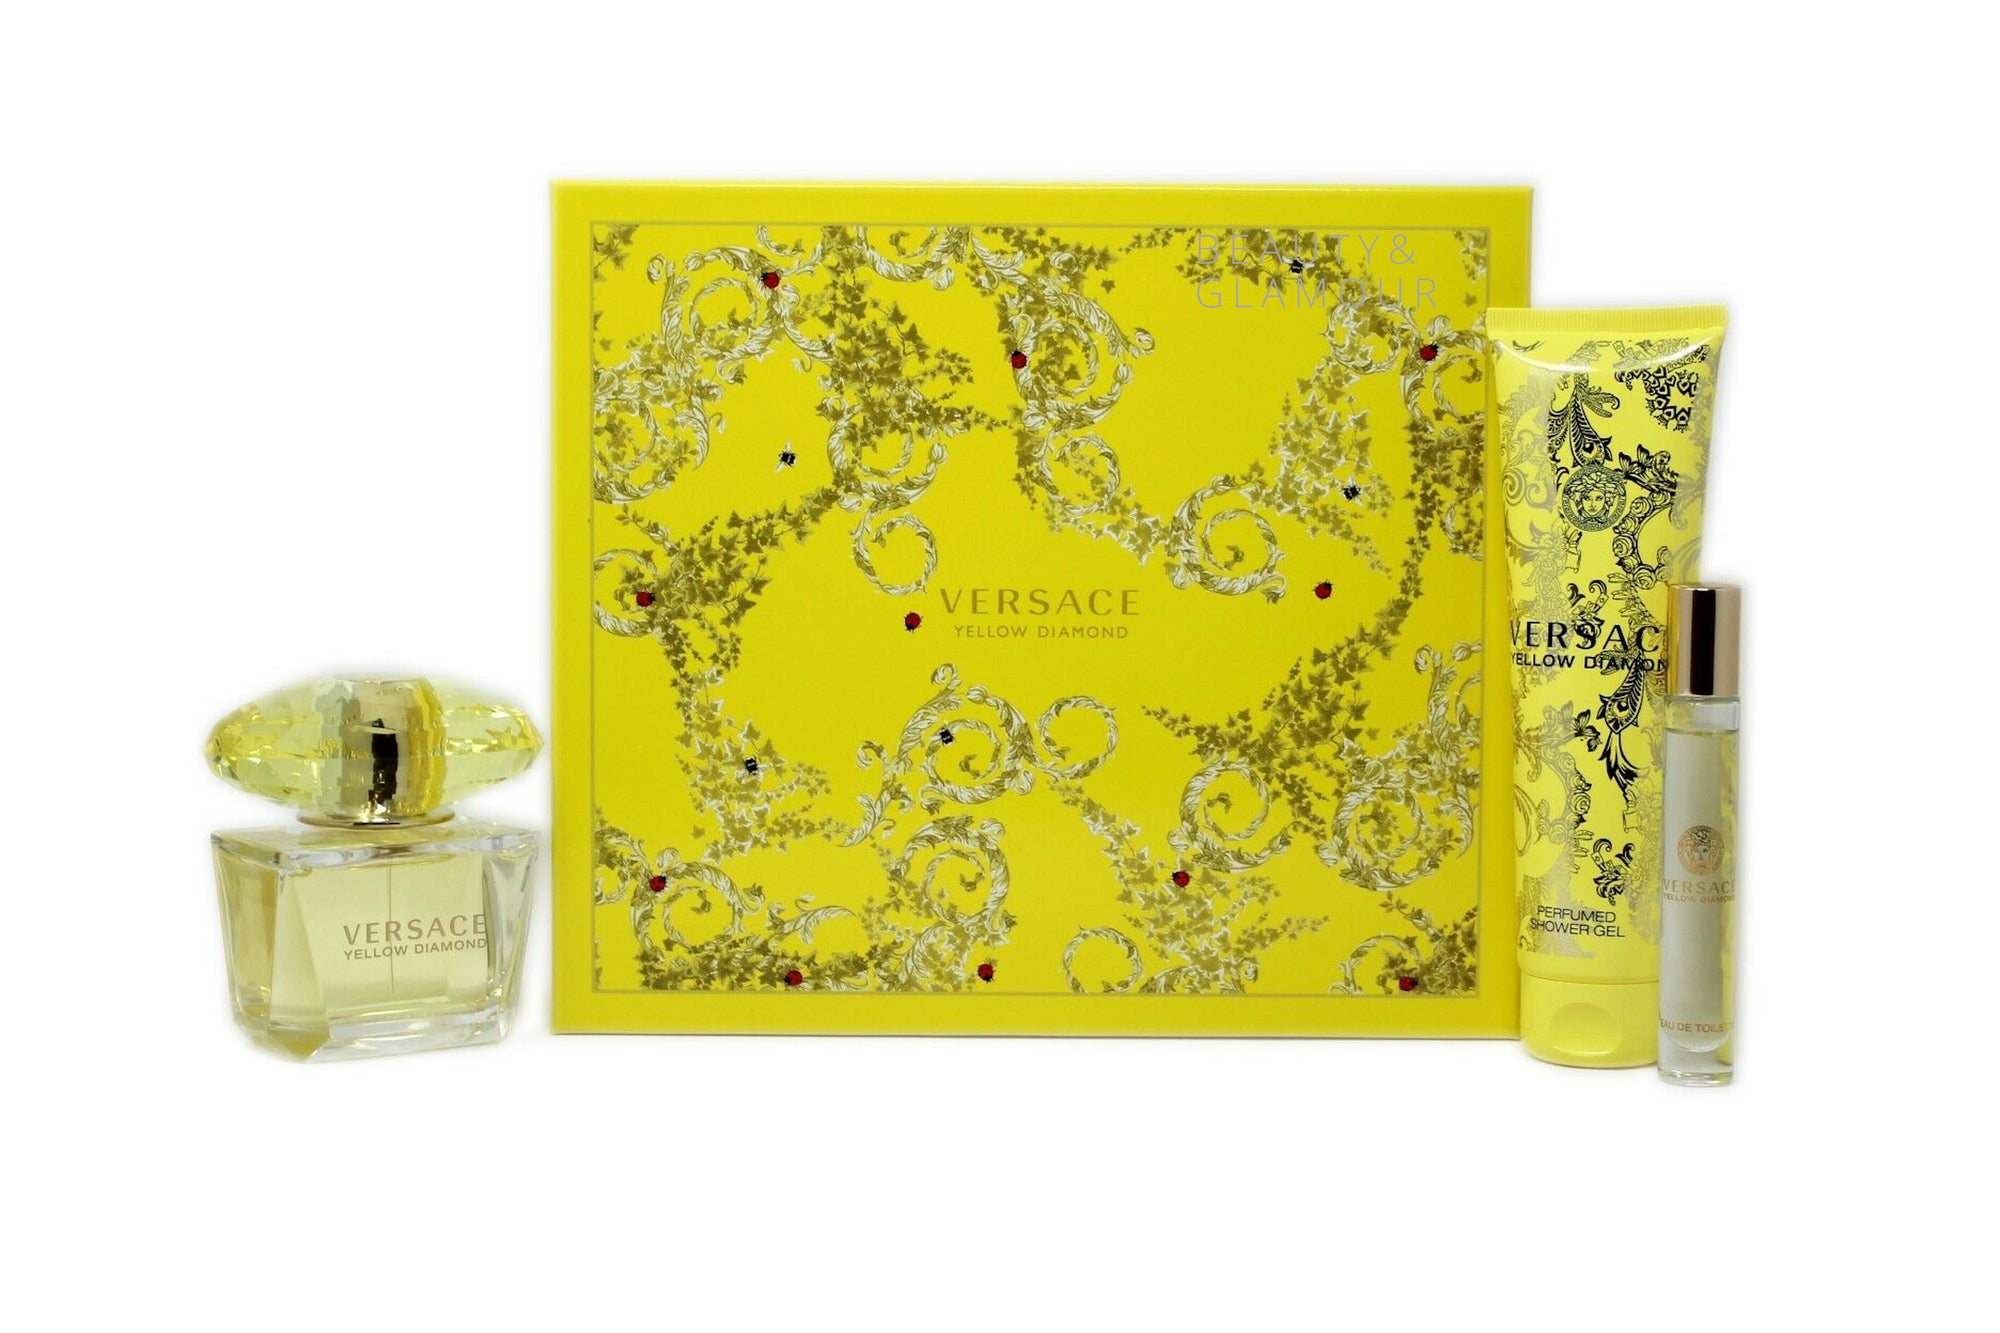 VERSACE YELLOW DIAMOND 3 PIECE GIFT SET FOR WOMEN